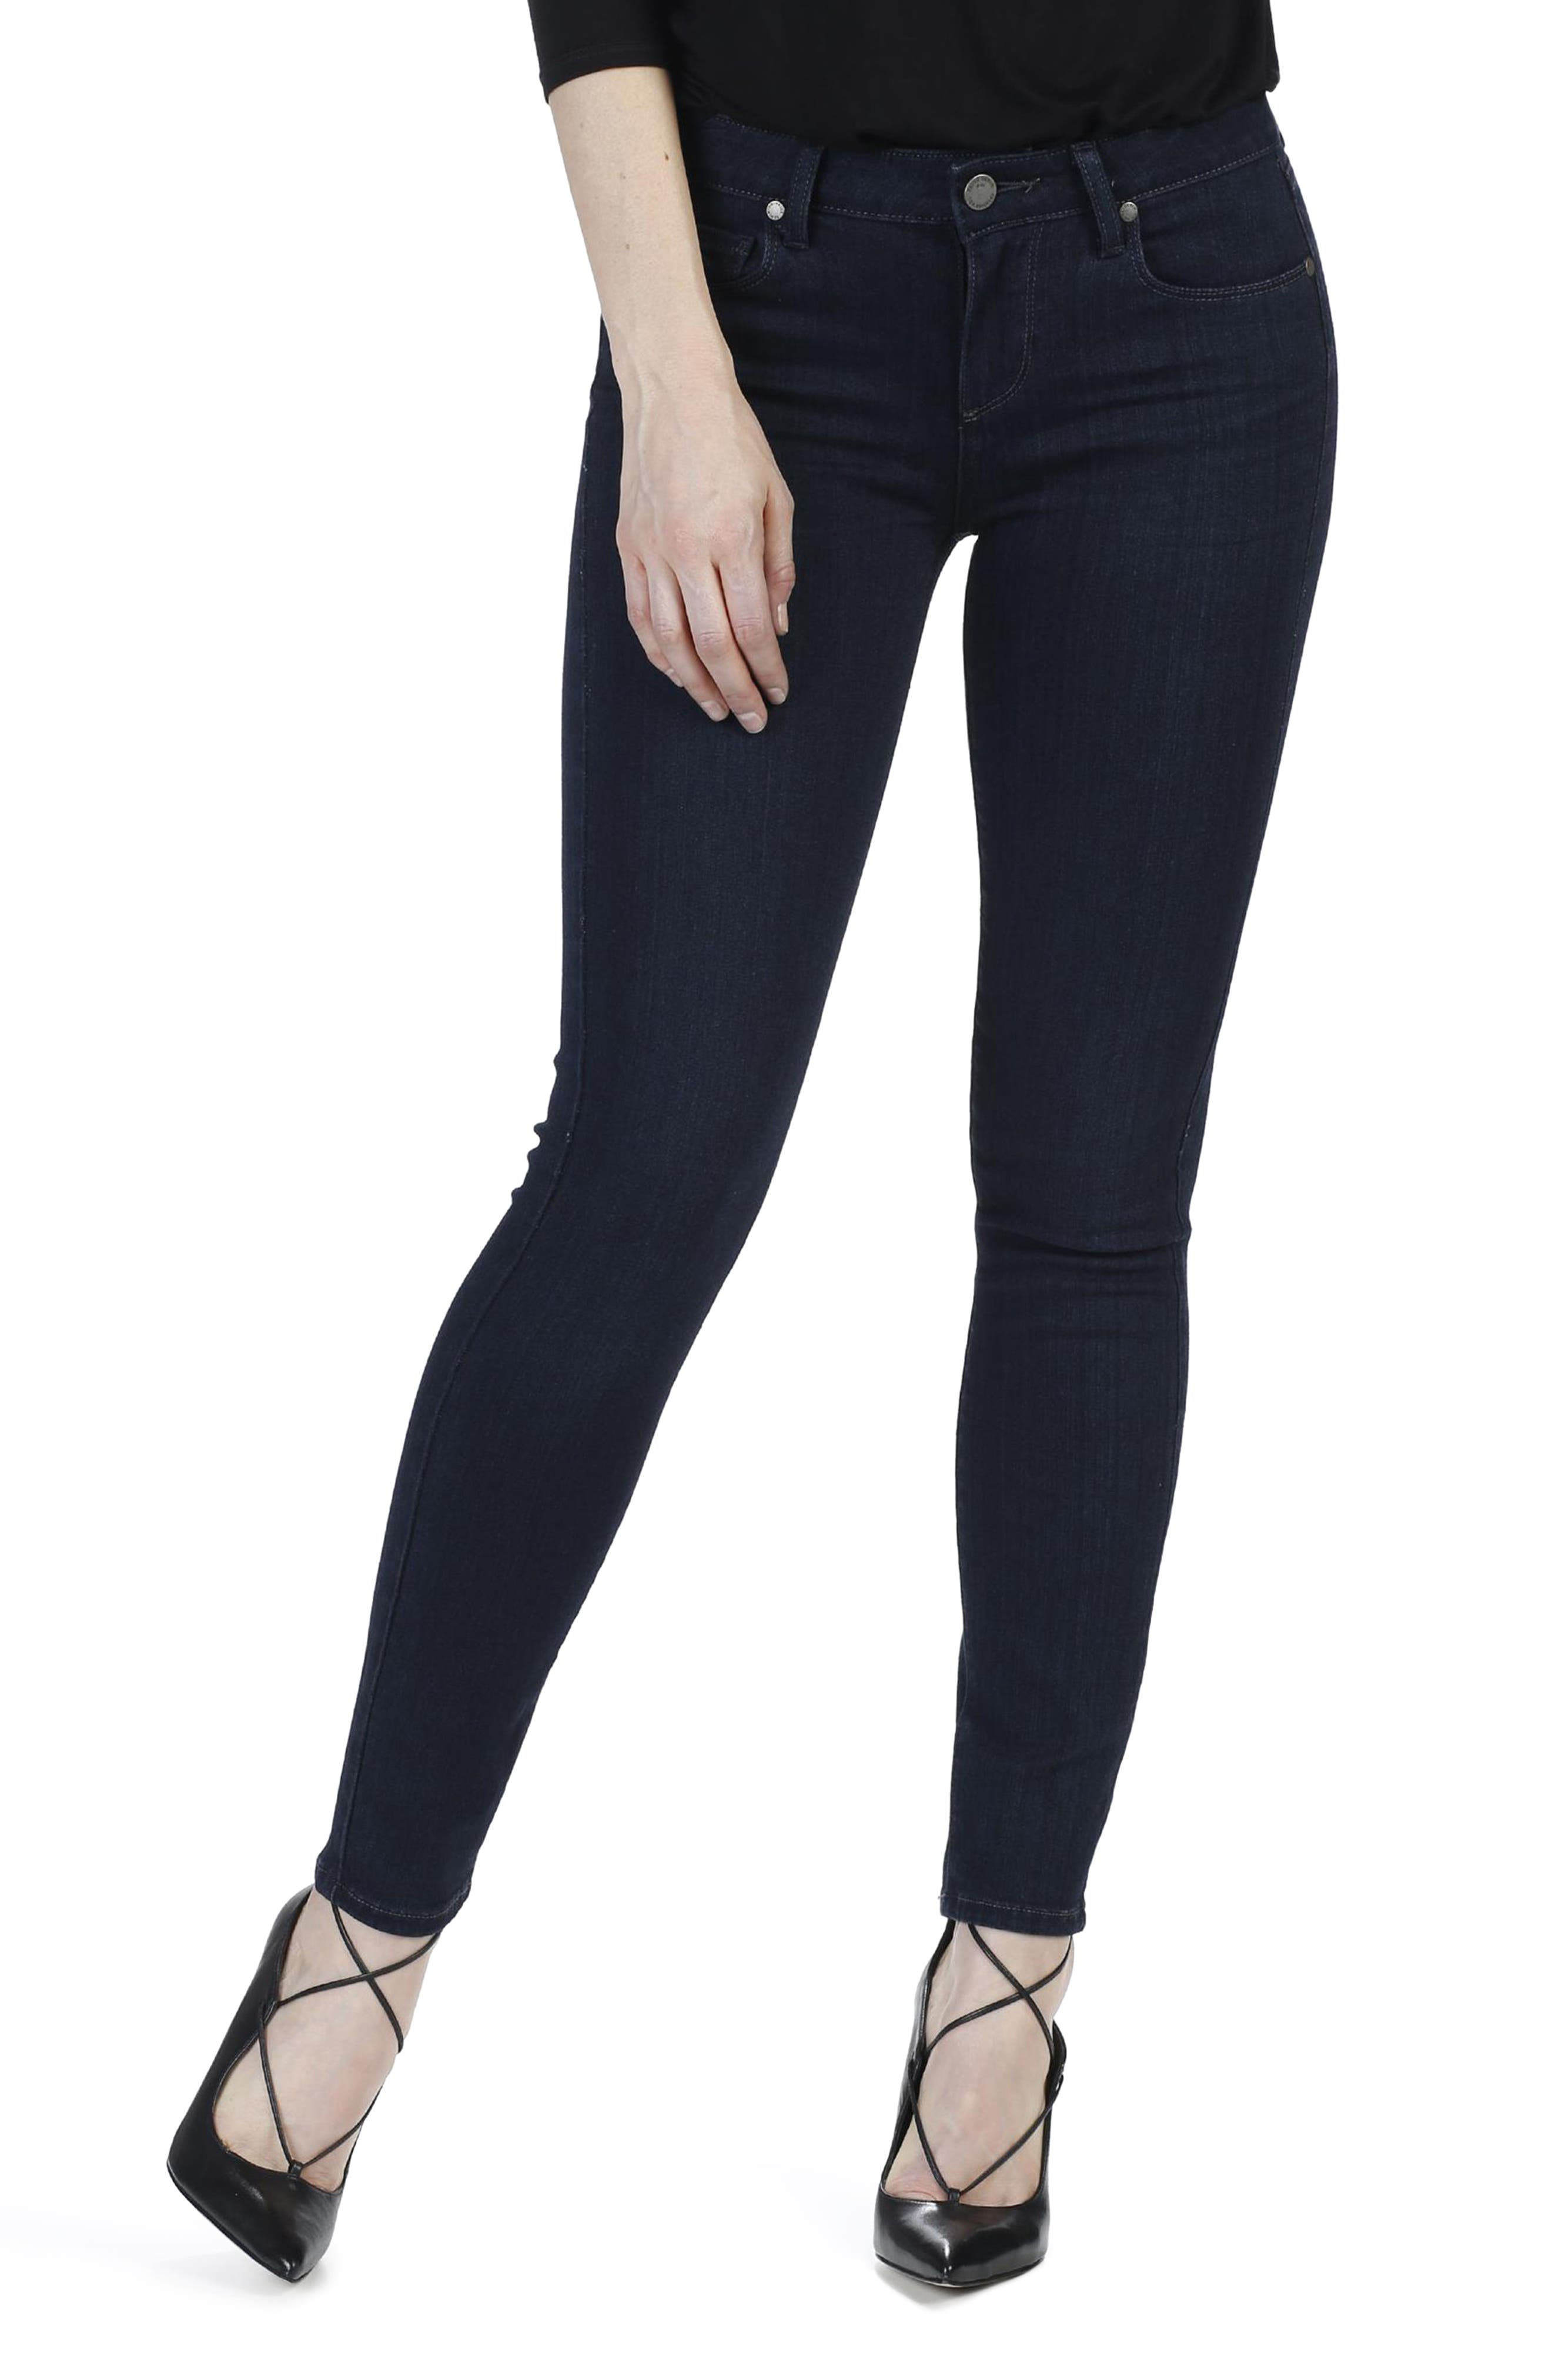 Transcend - Verdugo Ankle Ultra Skinny Jeans,                         Main,                         color, 400